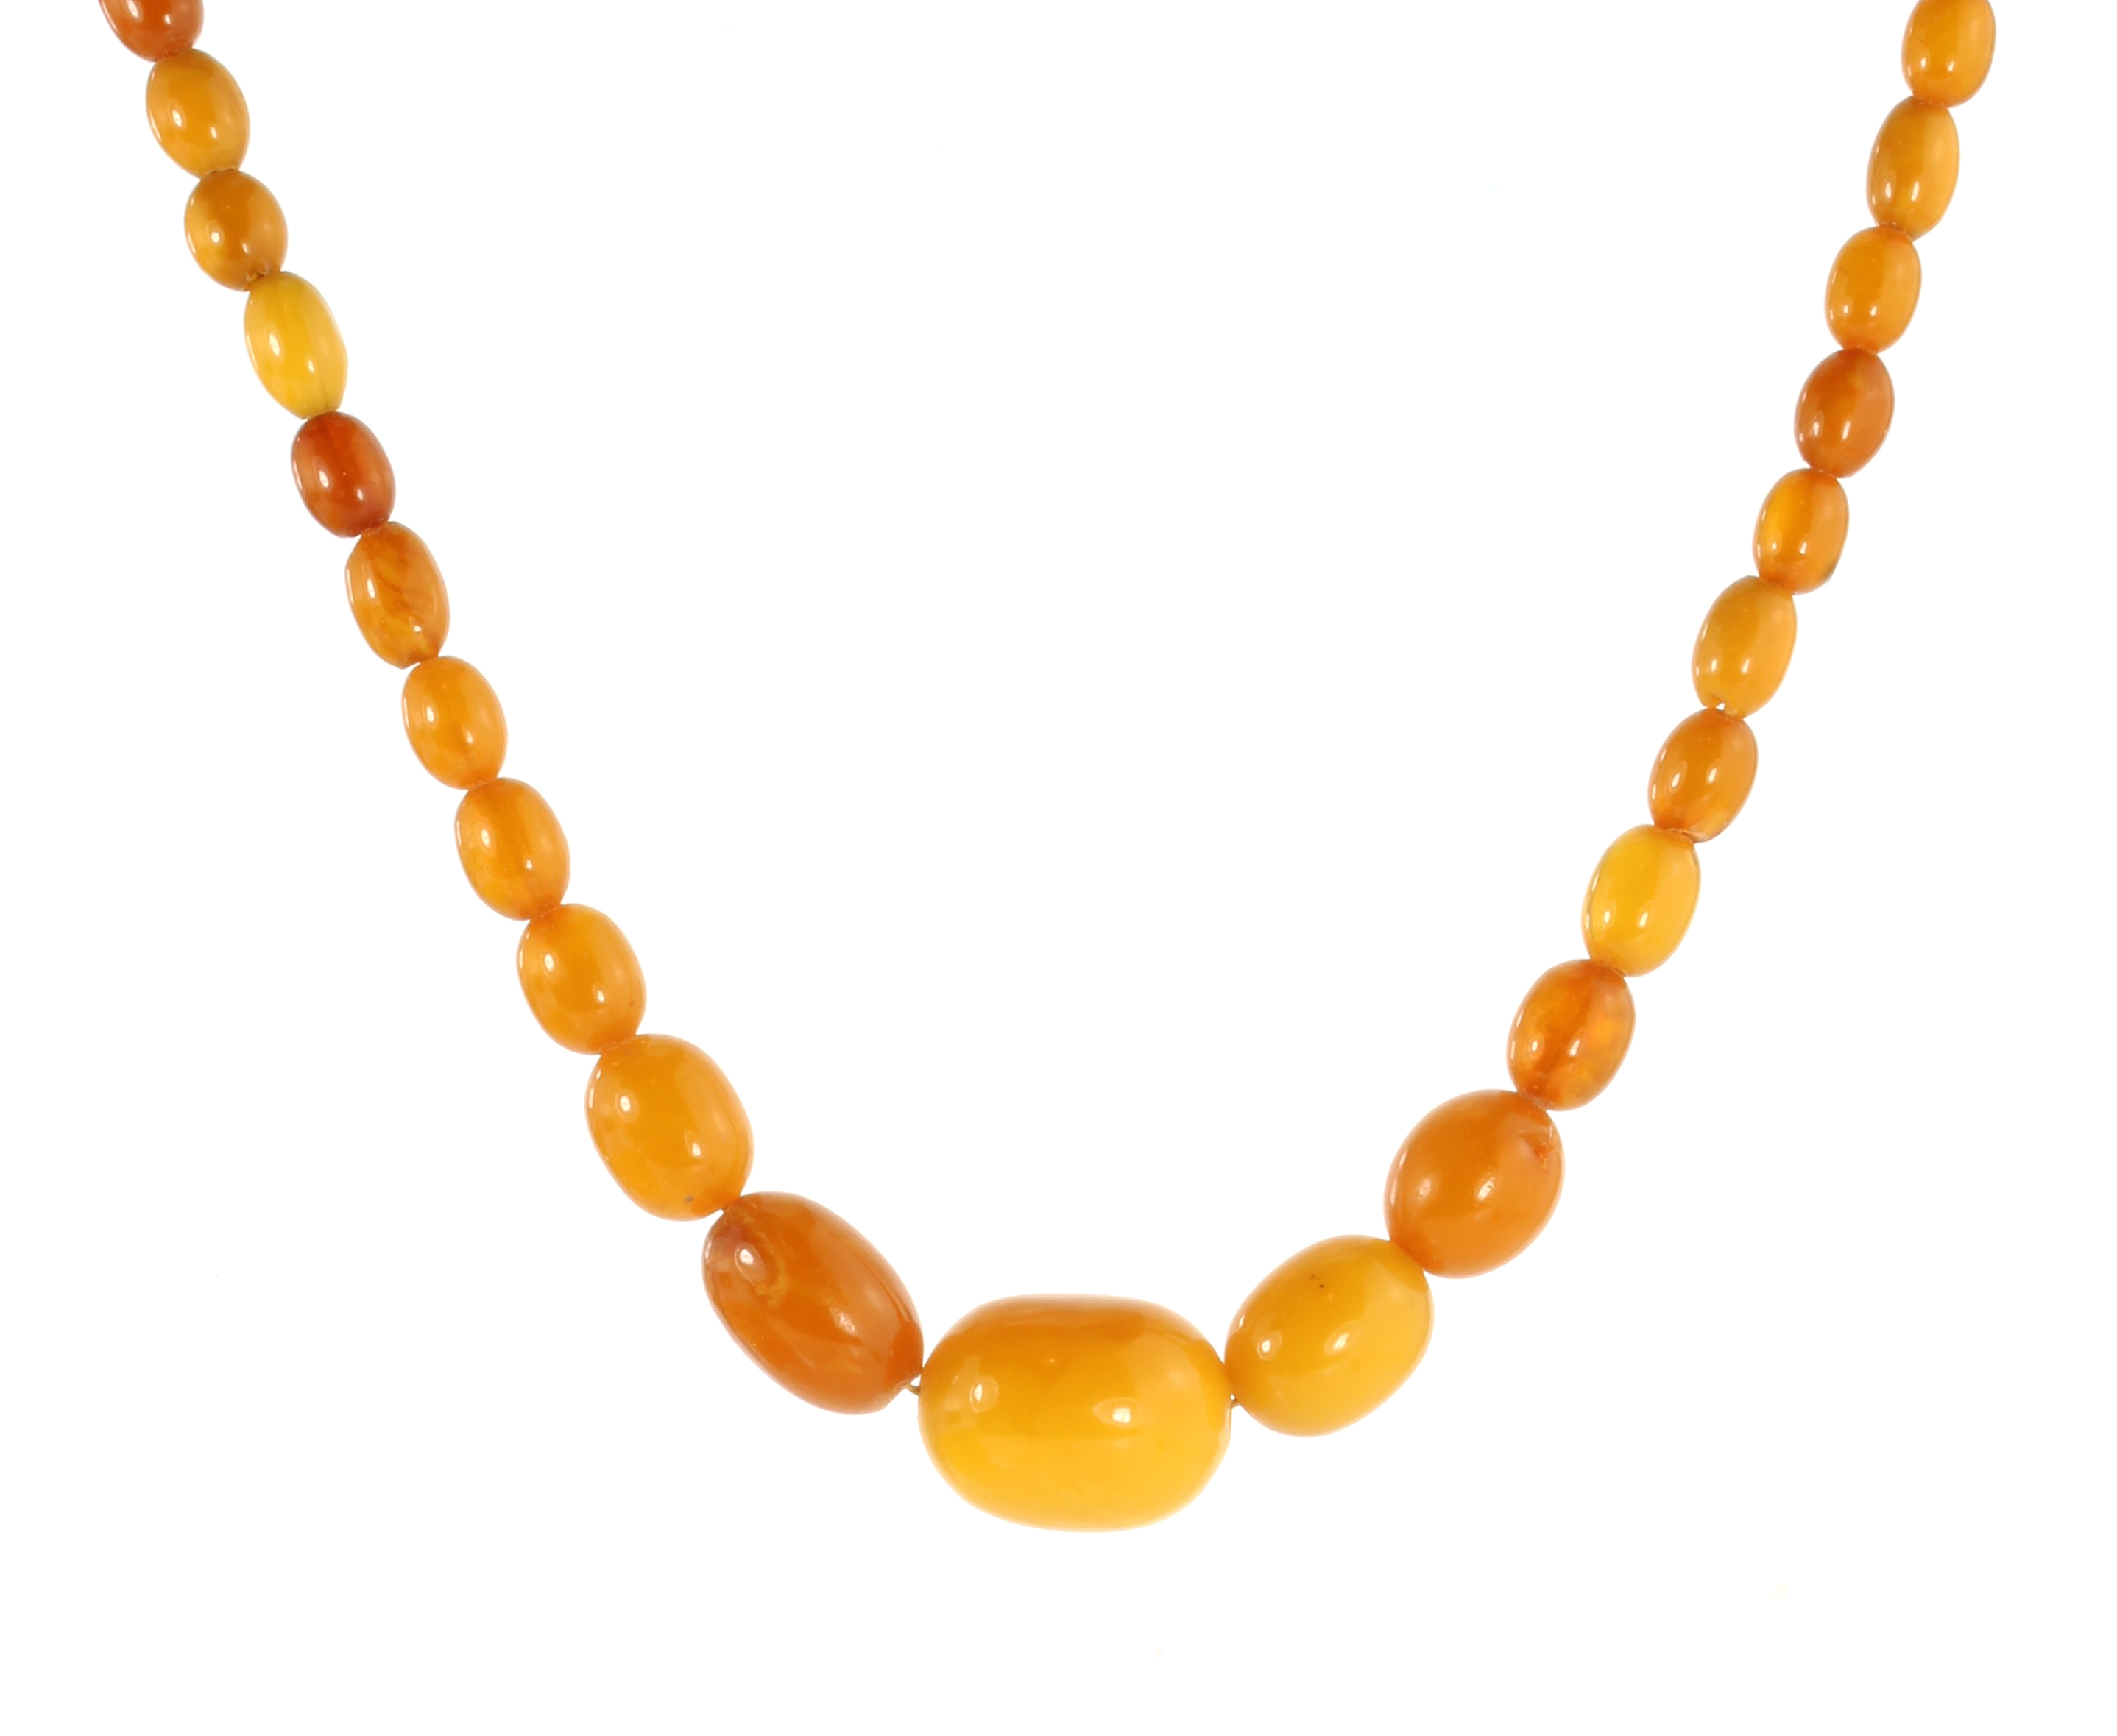 Los 6 - A NATURAL AMBER BEAD NECKLACE comprising a single row of sixty graduated polished oval beads up to